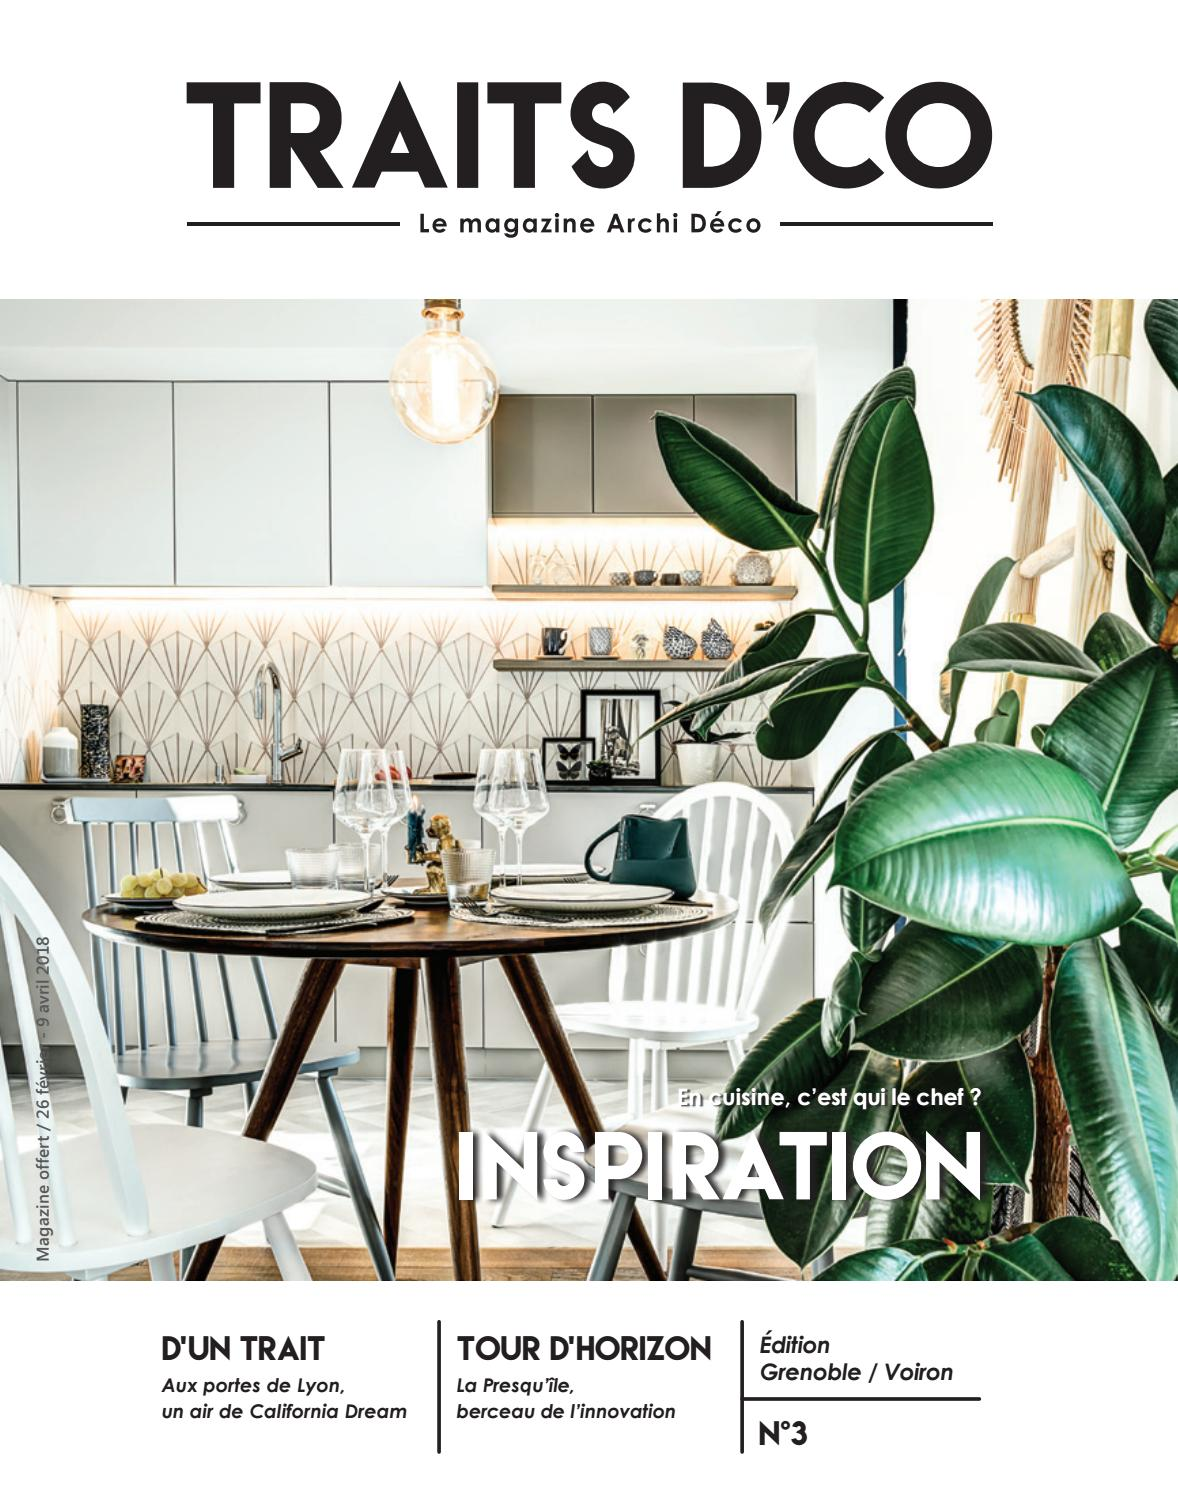 Traits Dco Magazine Grenoble Voiron N3 F Vrier 2018 By Traits D Co